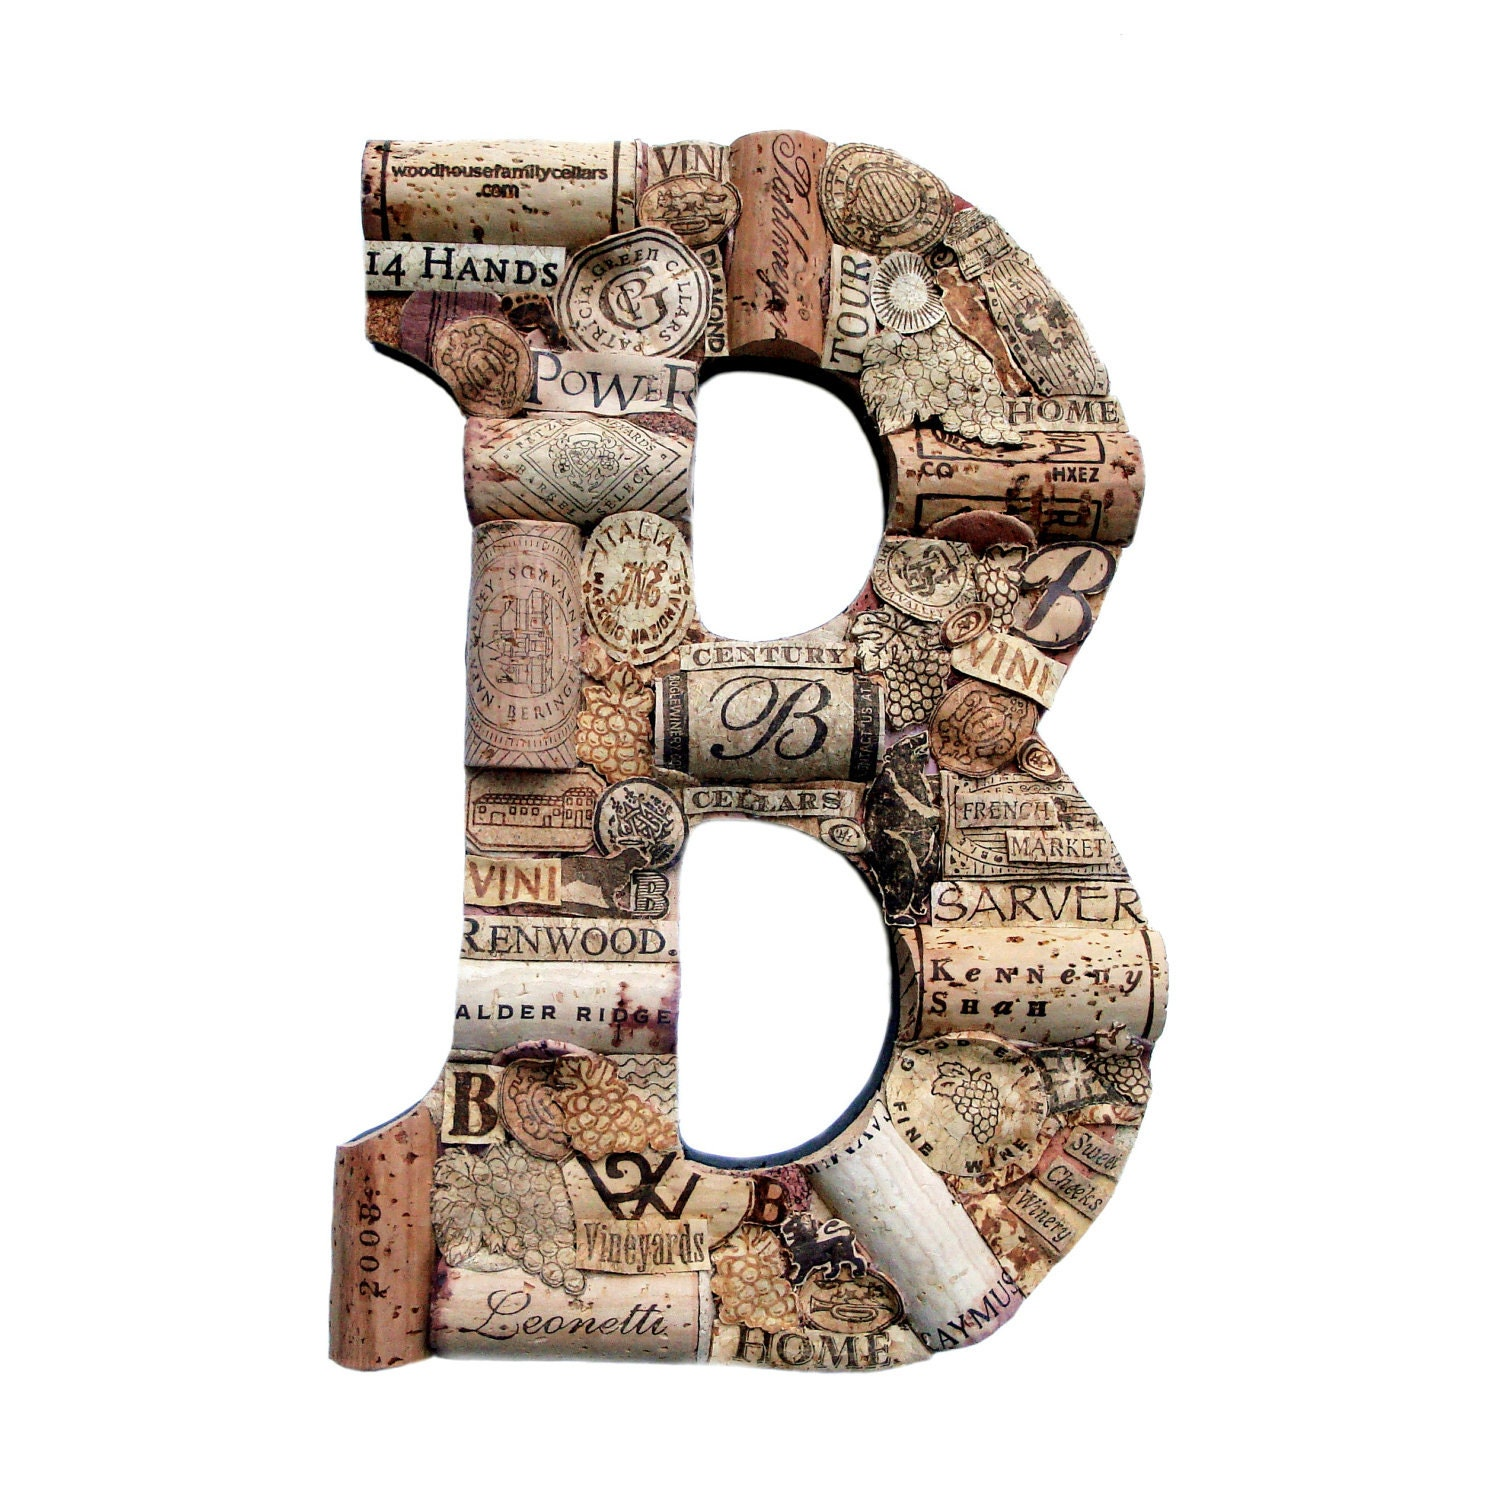 17 best images about monogram b on pinterest initials vintage typewriters and letter b